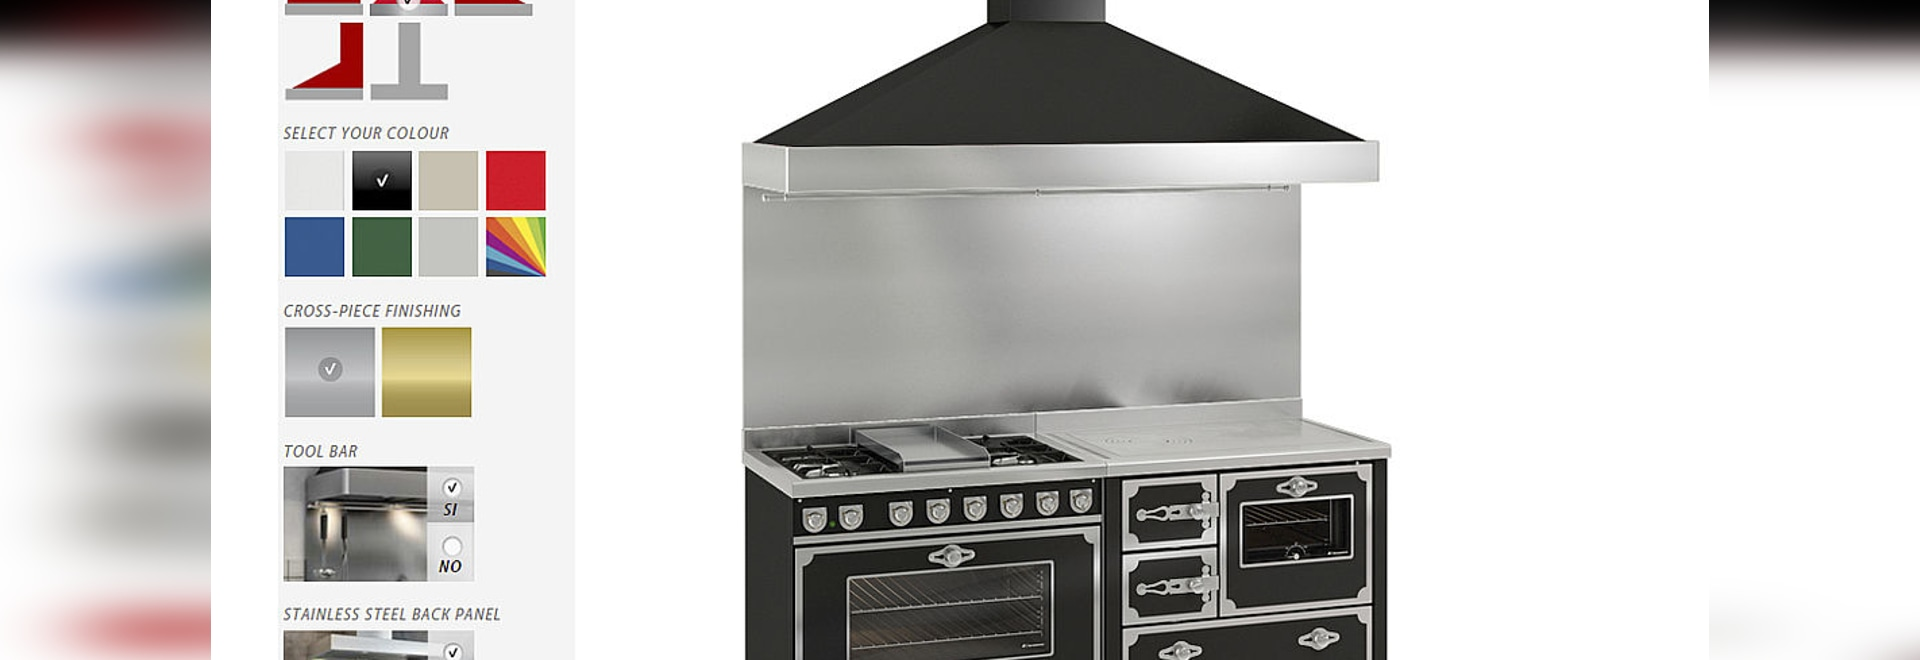 New Cooker Configurator